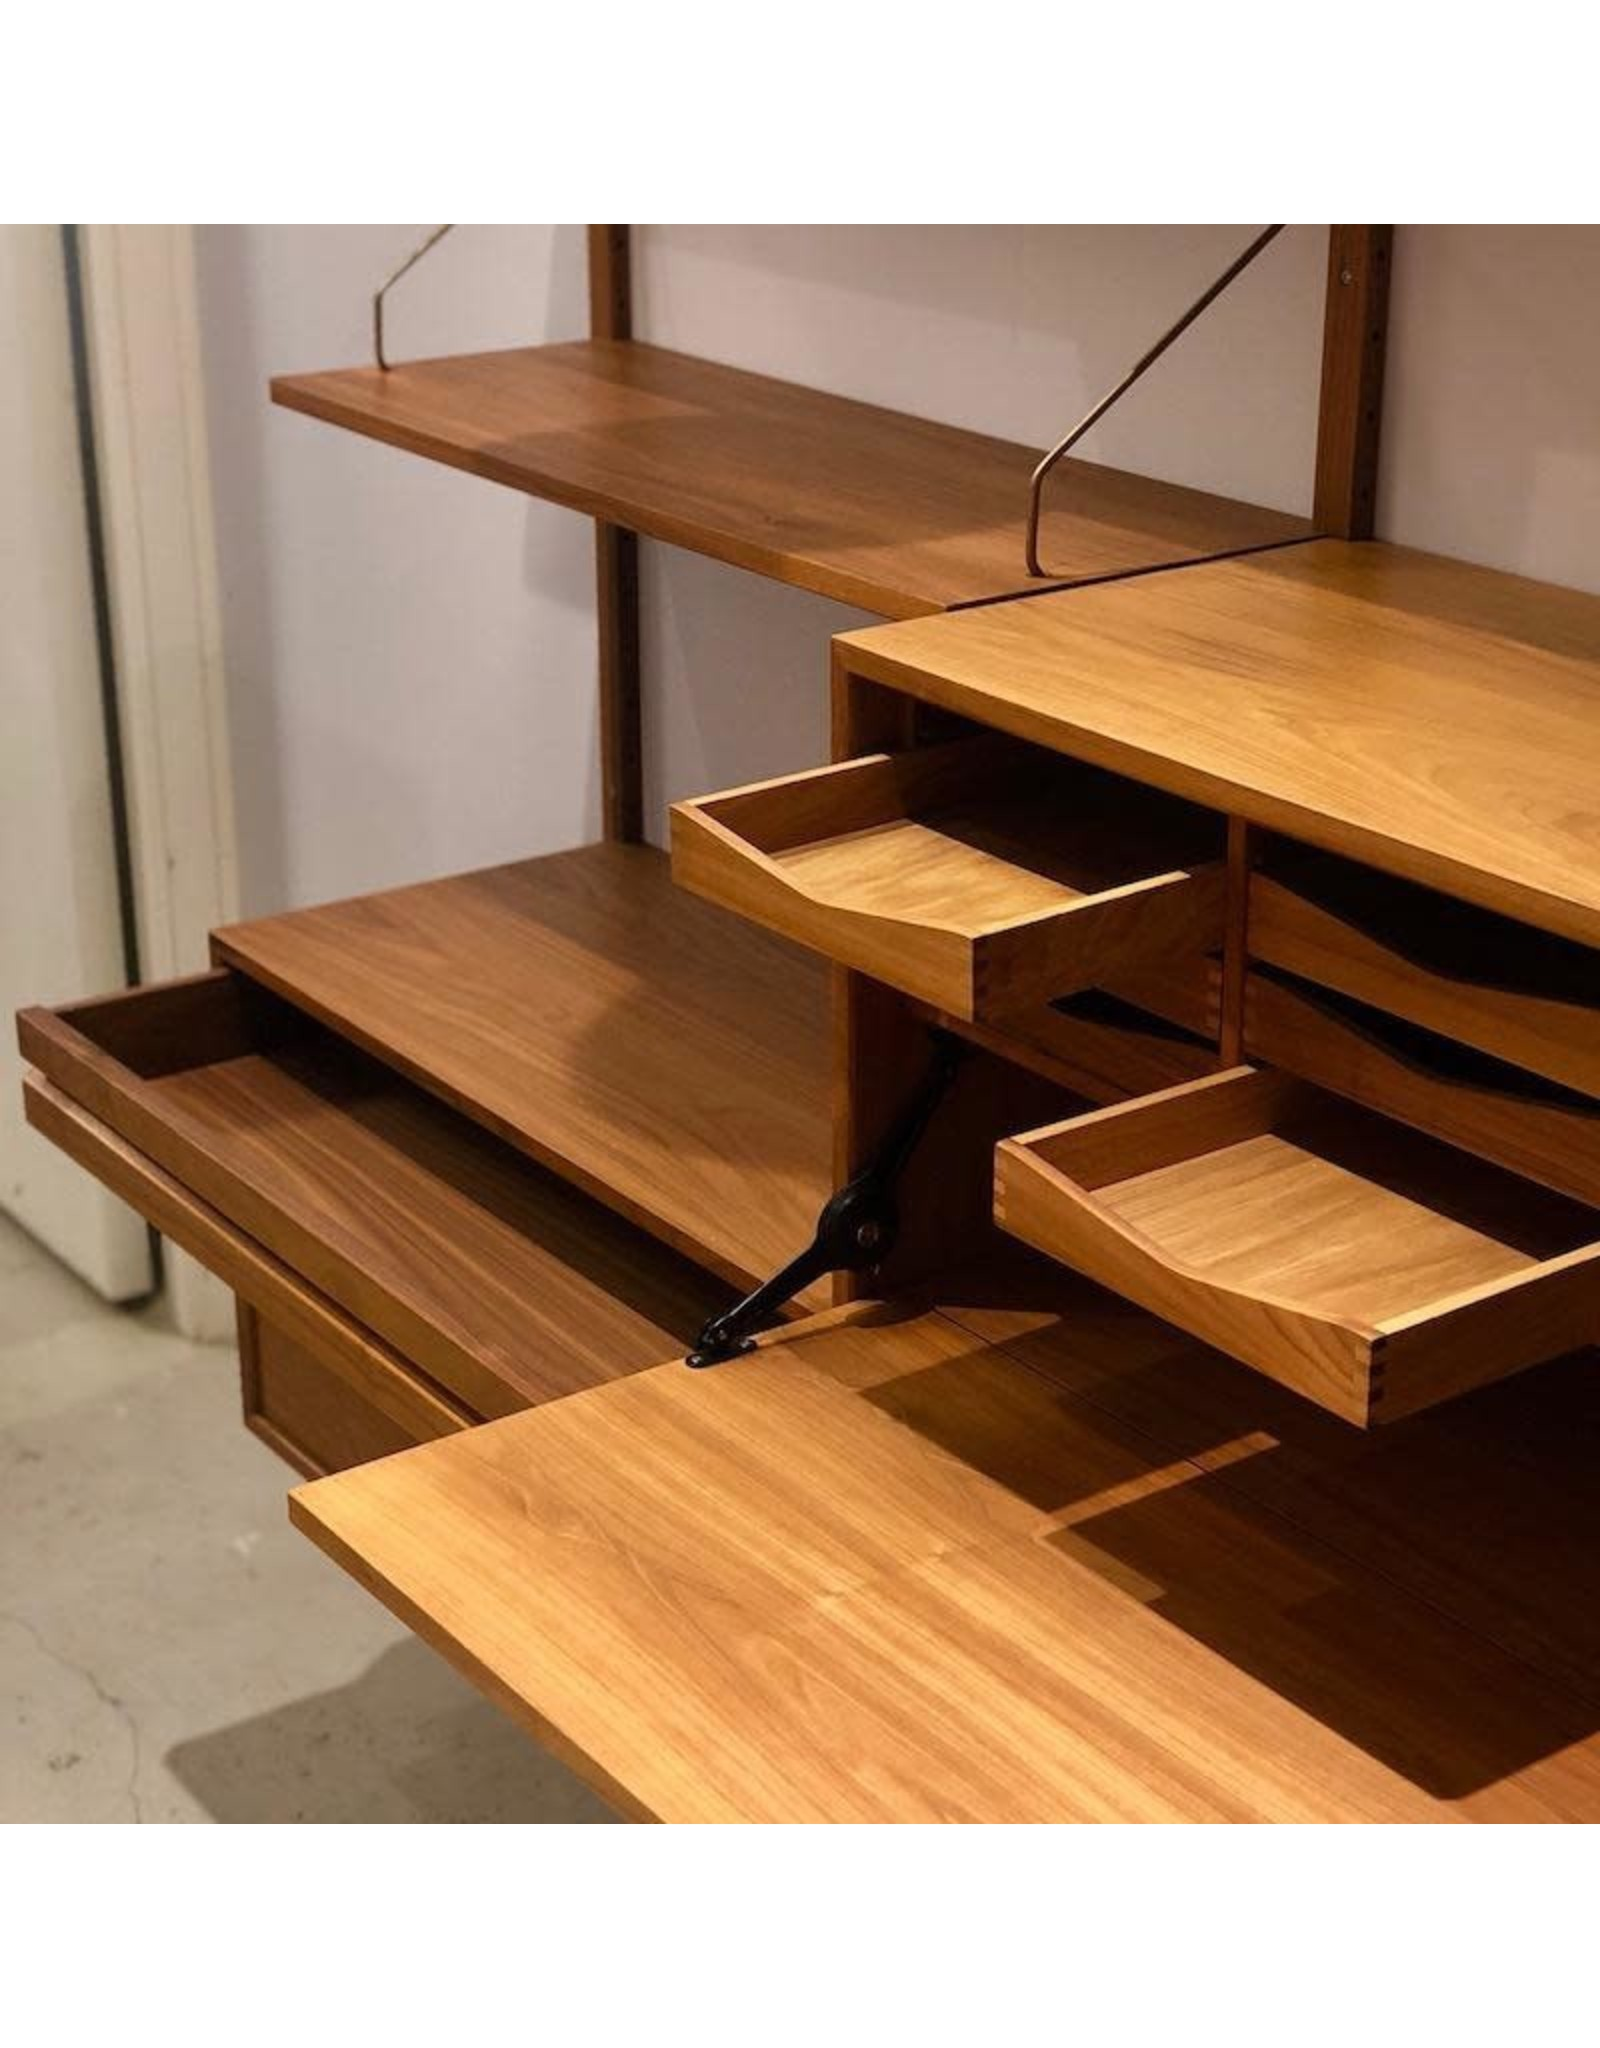 DK3 ROYAL SYSTEM SHELVING UNIT WITH WORK DESK AND DRAWERS